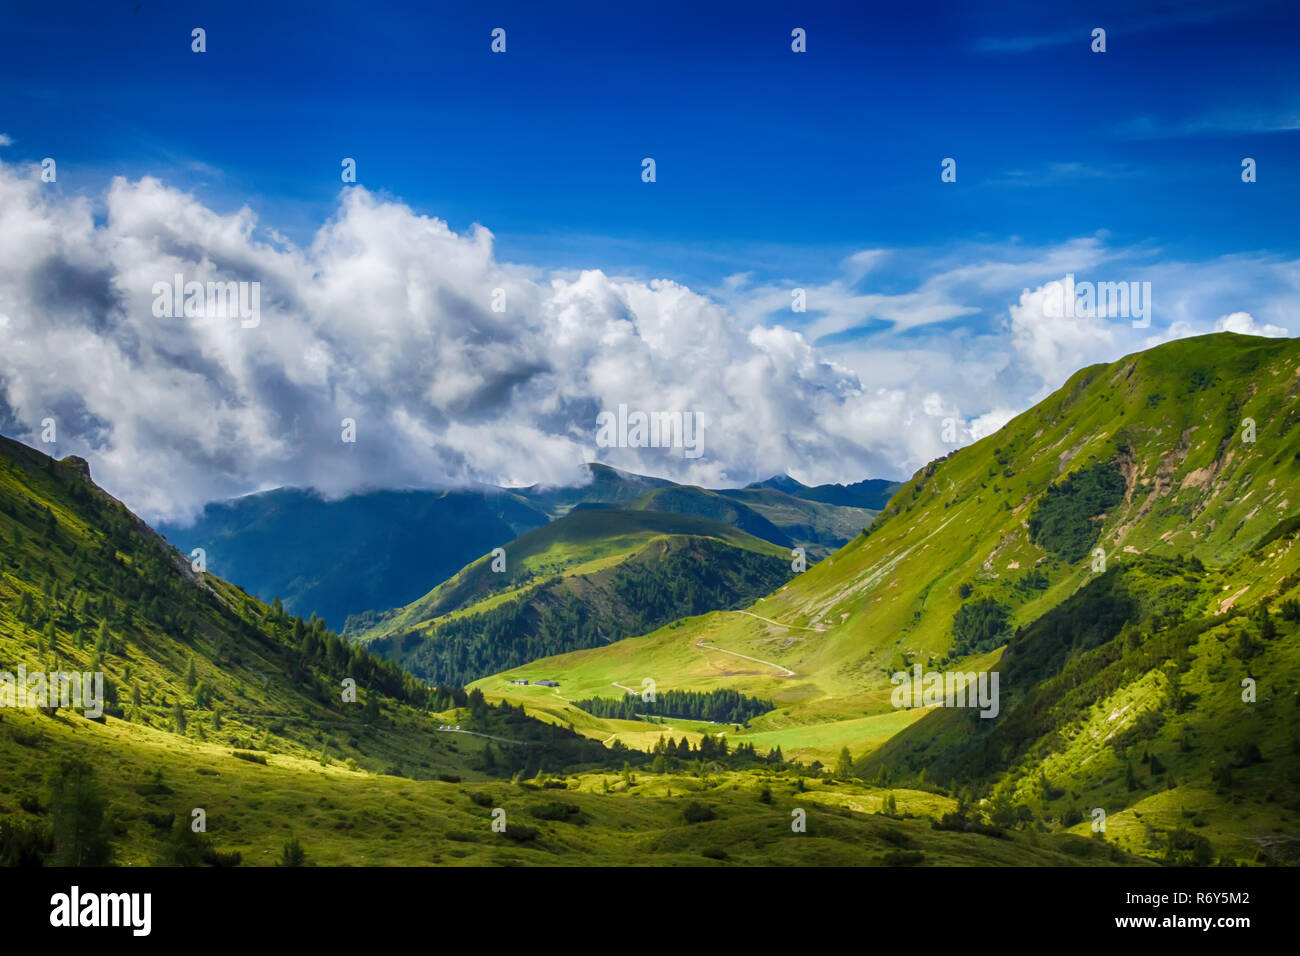 beautyfull mountain landscape in bagolino,lombardy,italy - Stock Image